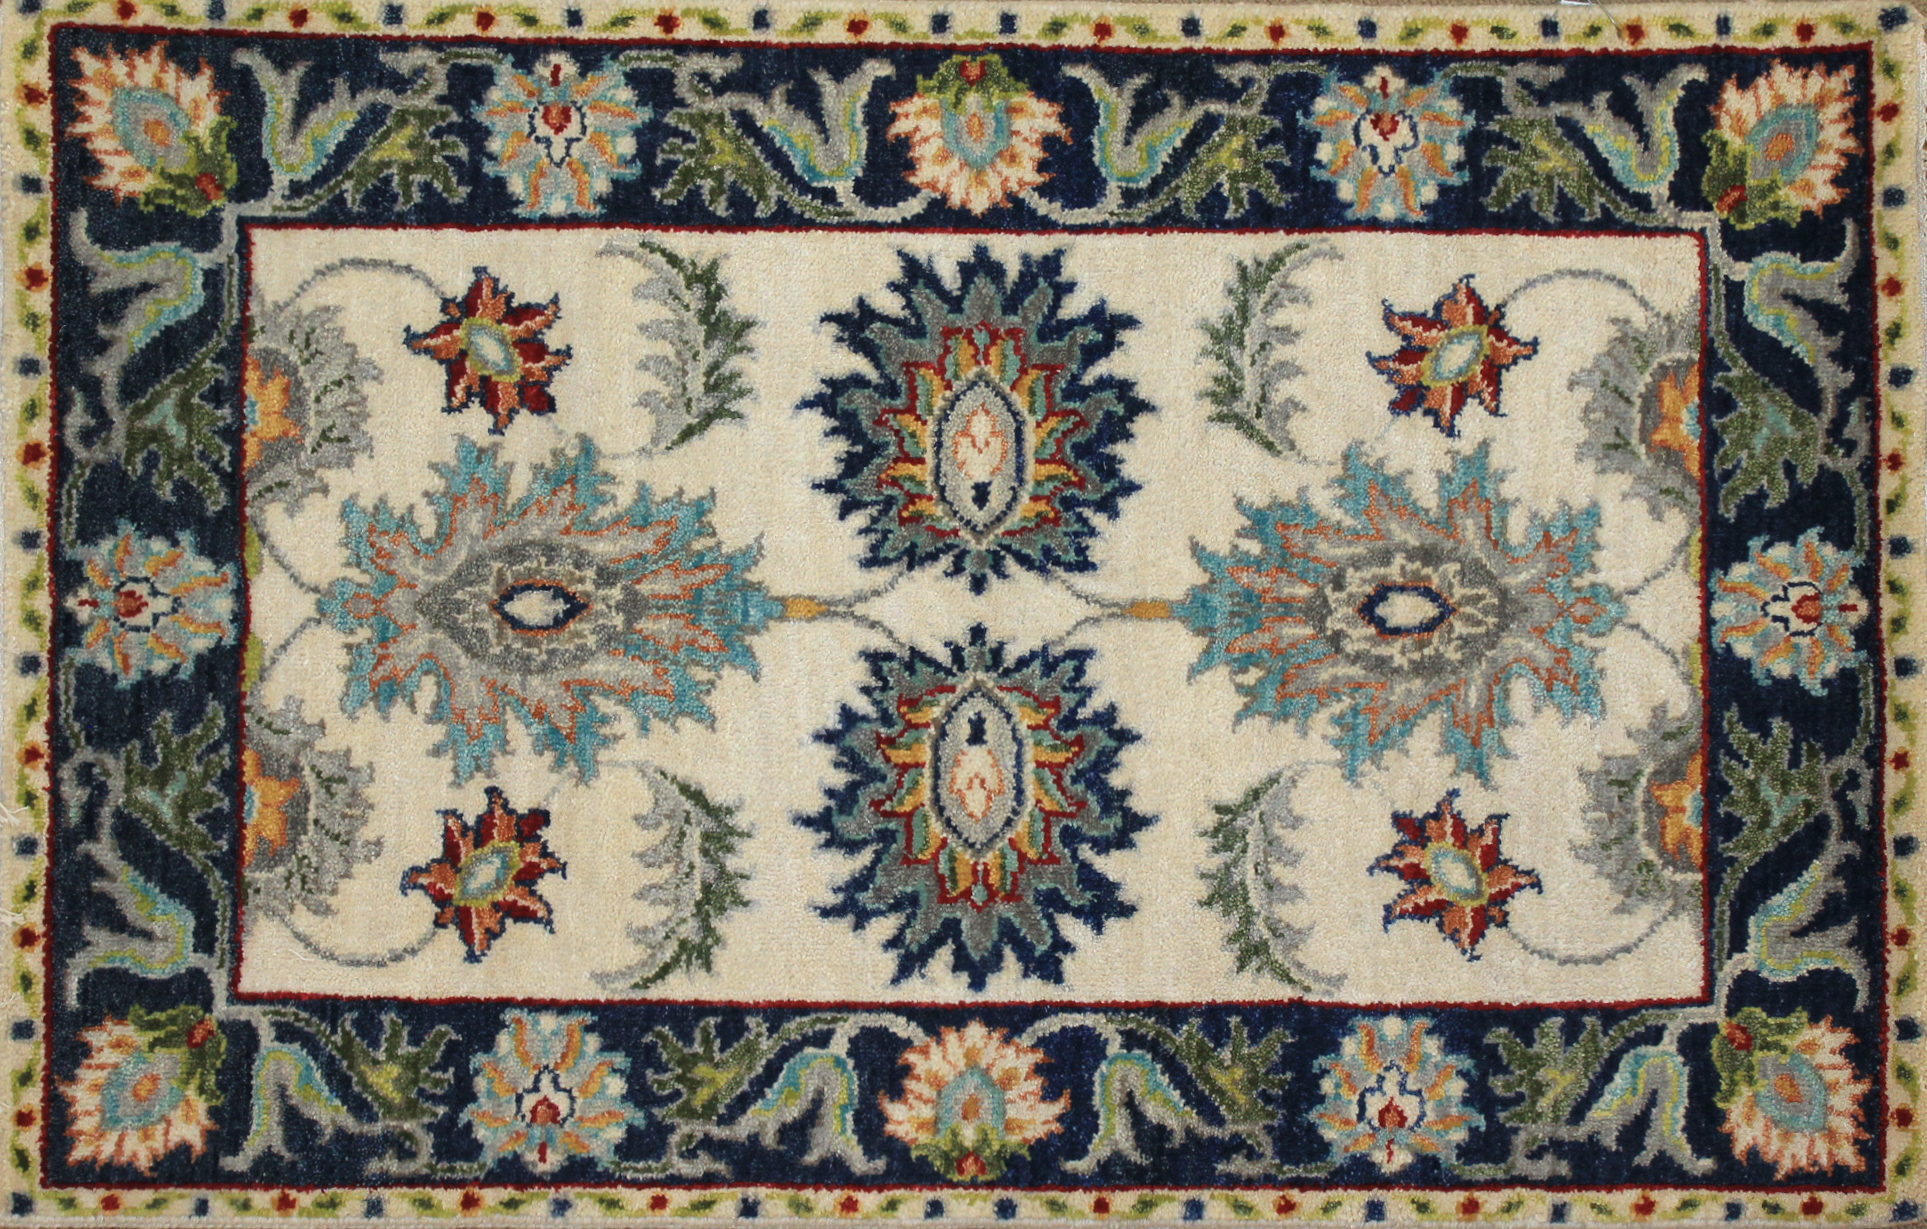 2X3 Traditional Hand Knotted Wool Area Rug - MR025255